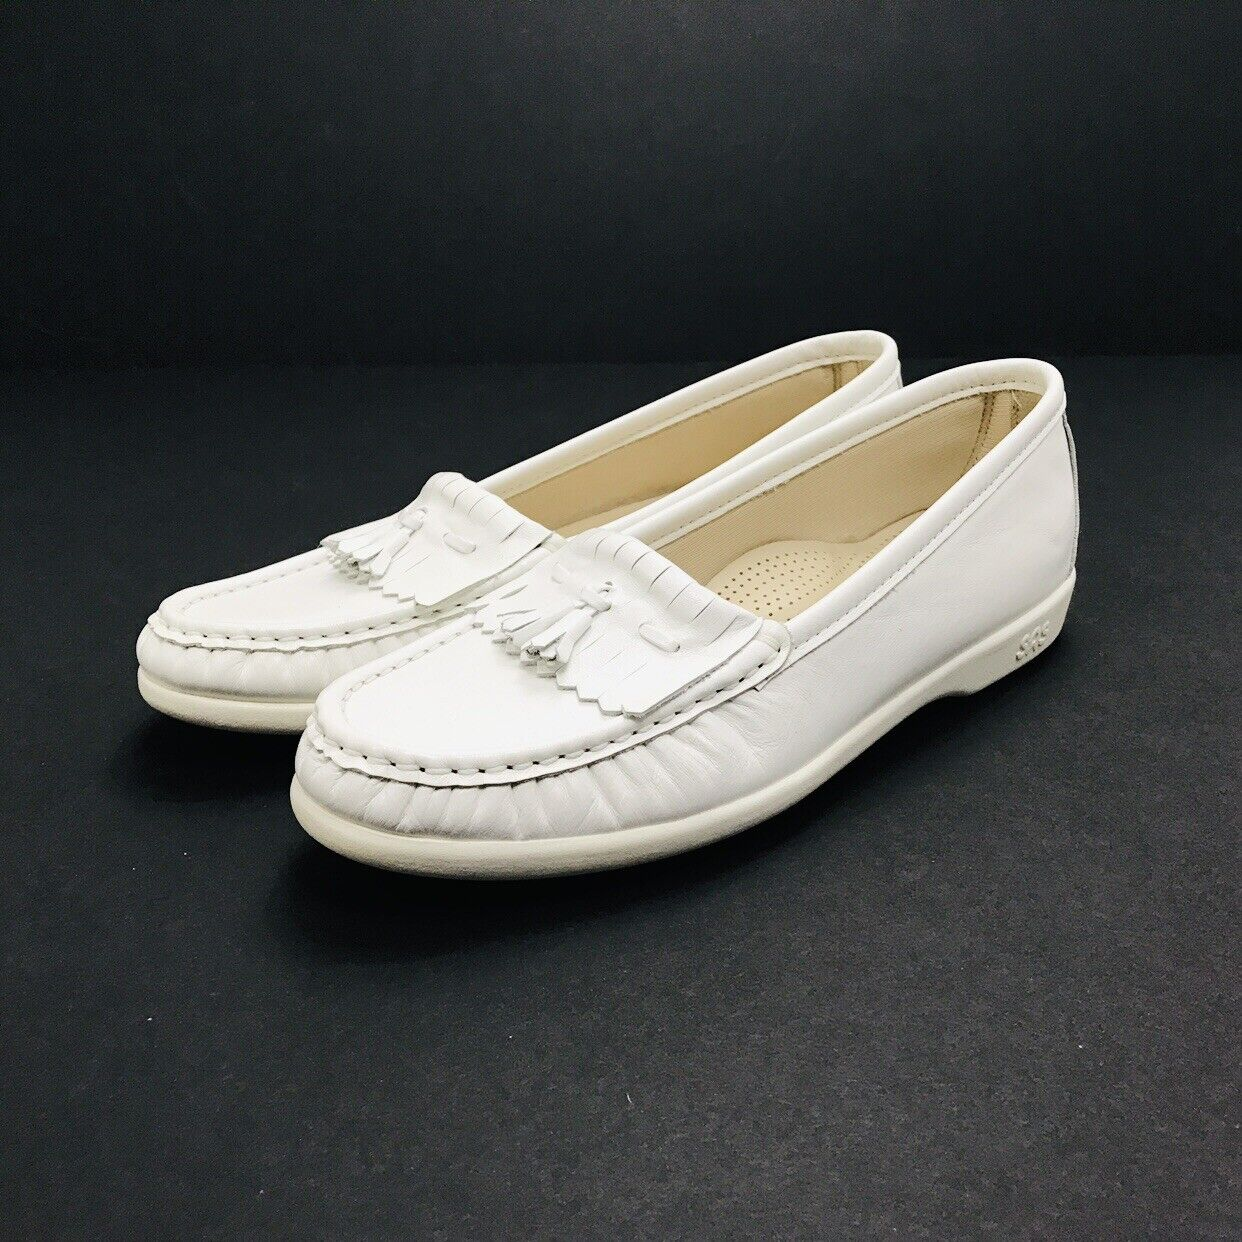 SAS Softie Soft White Leather Kiltie Tassel Moc Loafers shoes Women's 9 N